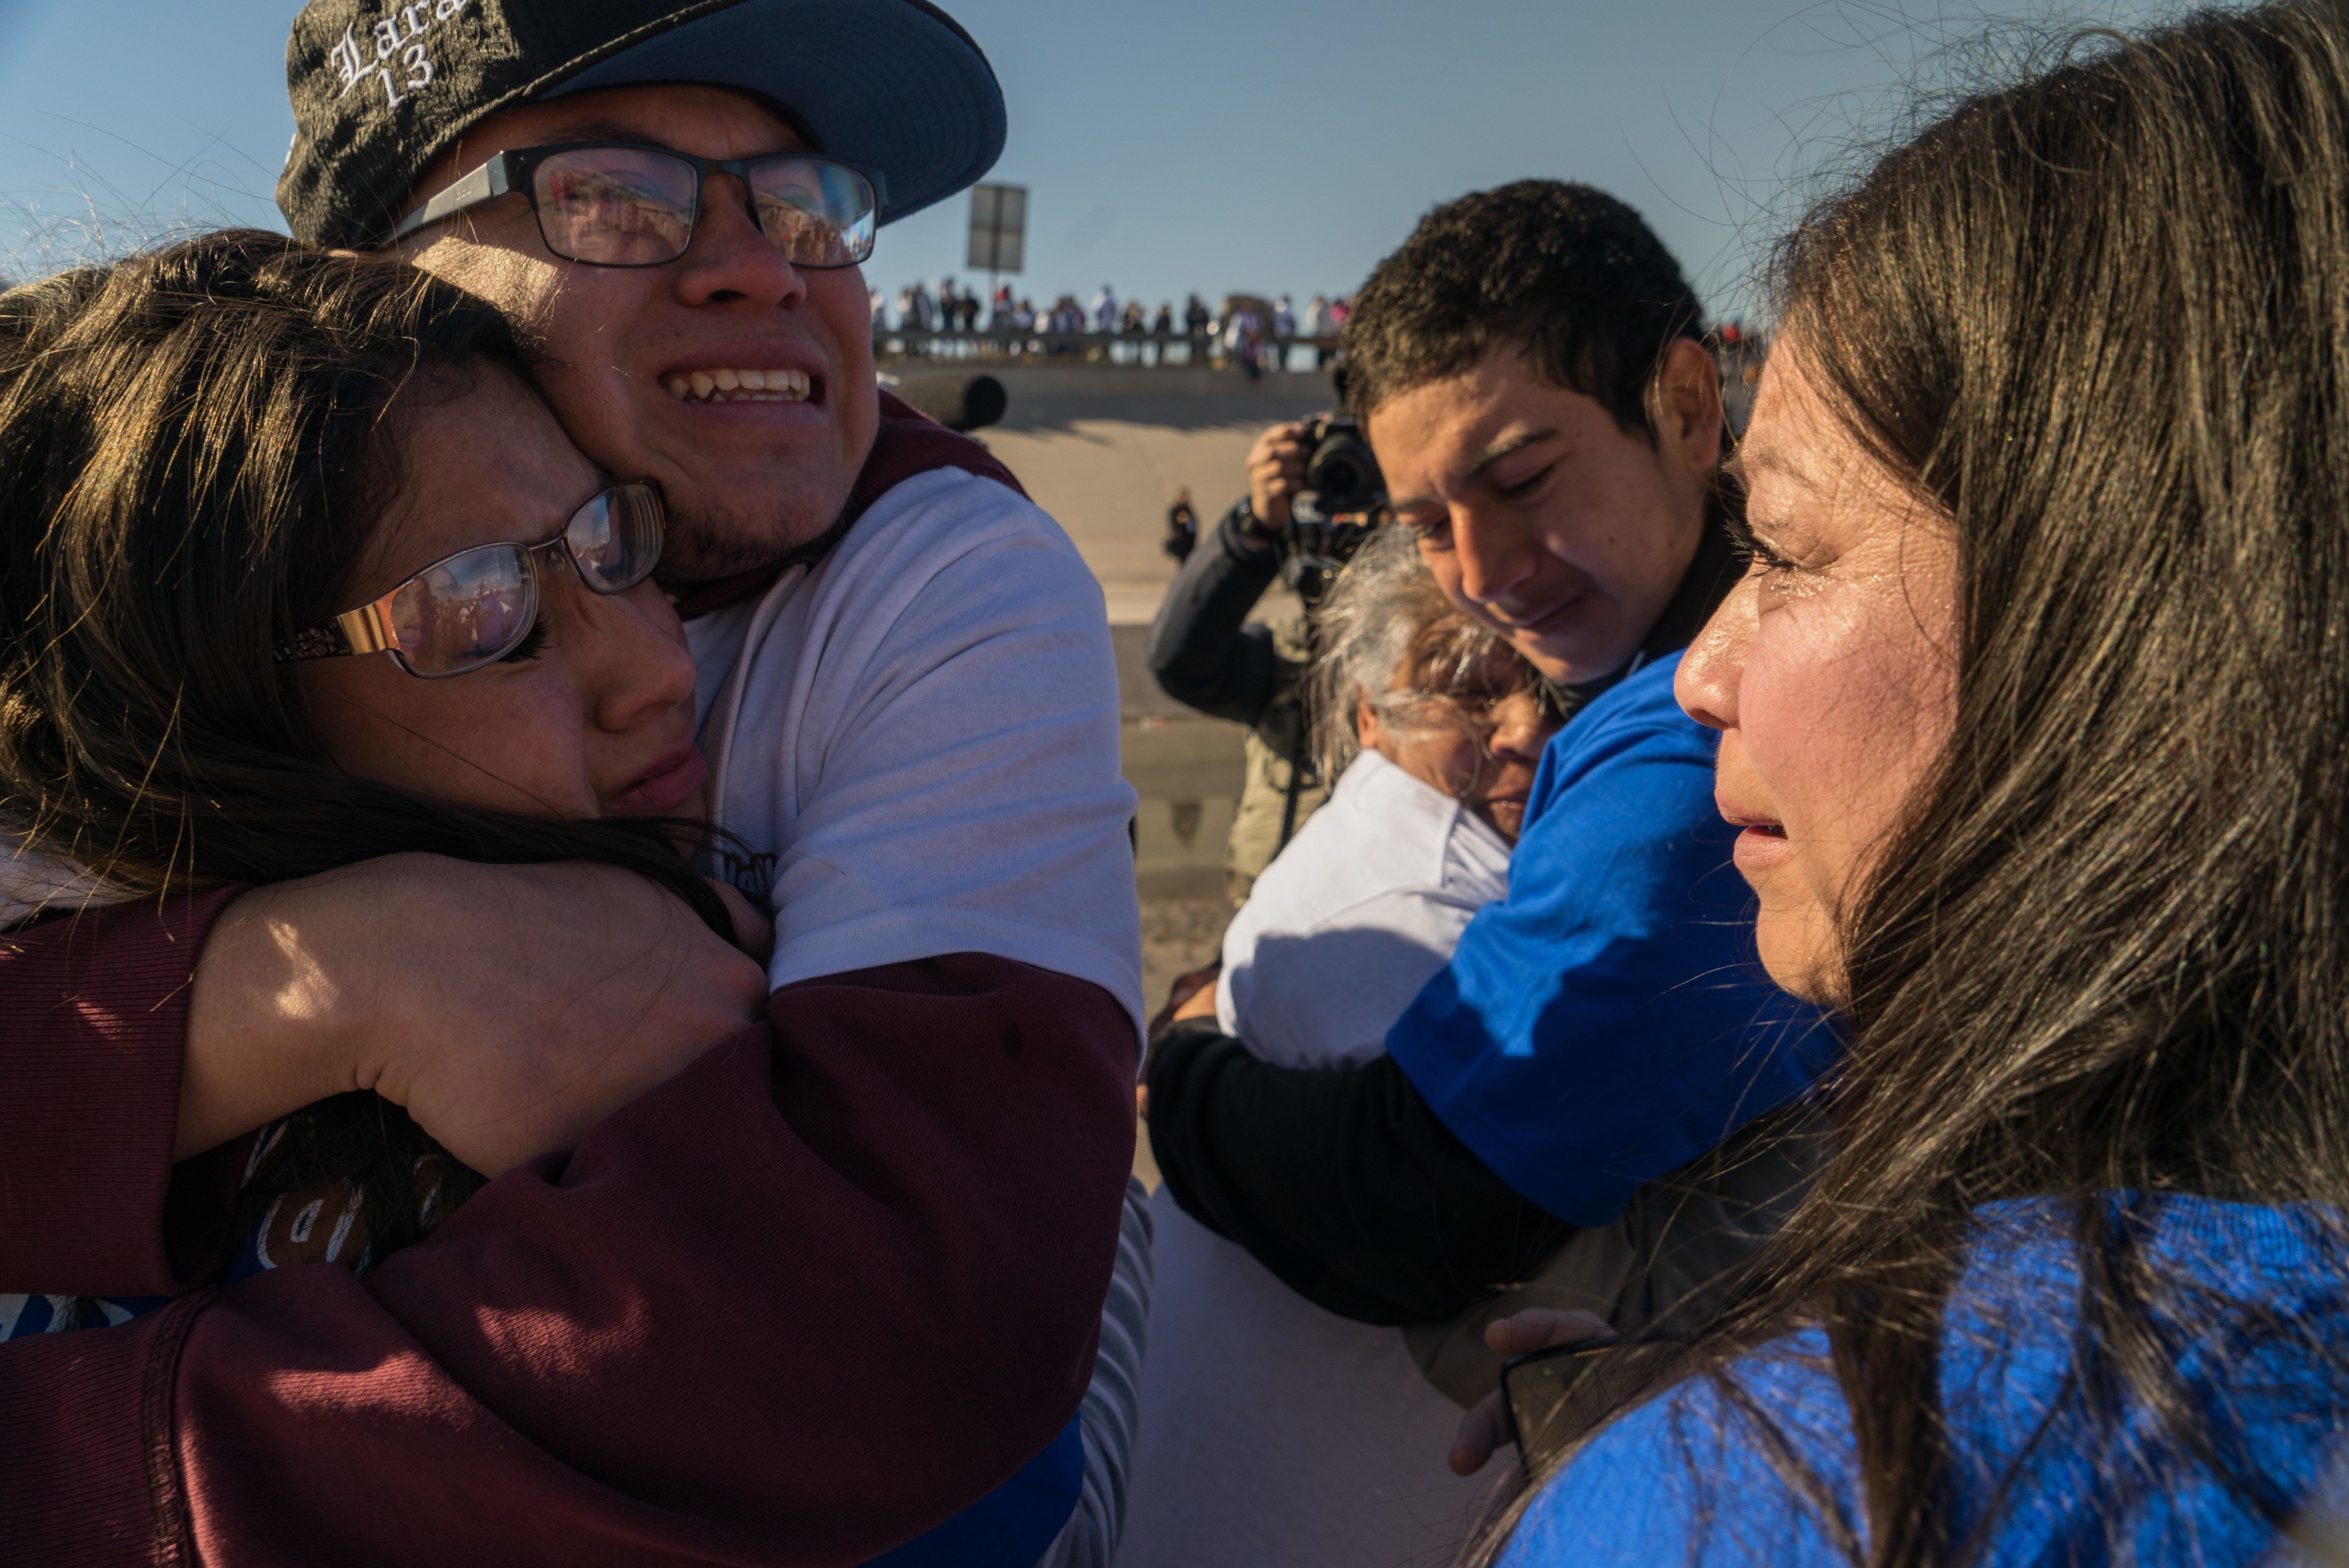 Mexican residents hug relatives residing in the United States during a 'Hugs Not Walls' event temporarily reuniting relatives at the U.S. and Mexico border in Juarez, Mexico, on Saturday, Jan. 28, 2017. Mexican President Enrique Pena Nieto and U.S. President Donald Trump agreed to stop publicly talking about who would pay for a border wall during a phone call Friday, representatives of both governments said, putting at least a partial lid on a feud that has threatened to rupture one of the world's biggest bilateral trade relationships. Photographer: Cesar Rodriguez/Bloomberg via Getty Images